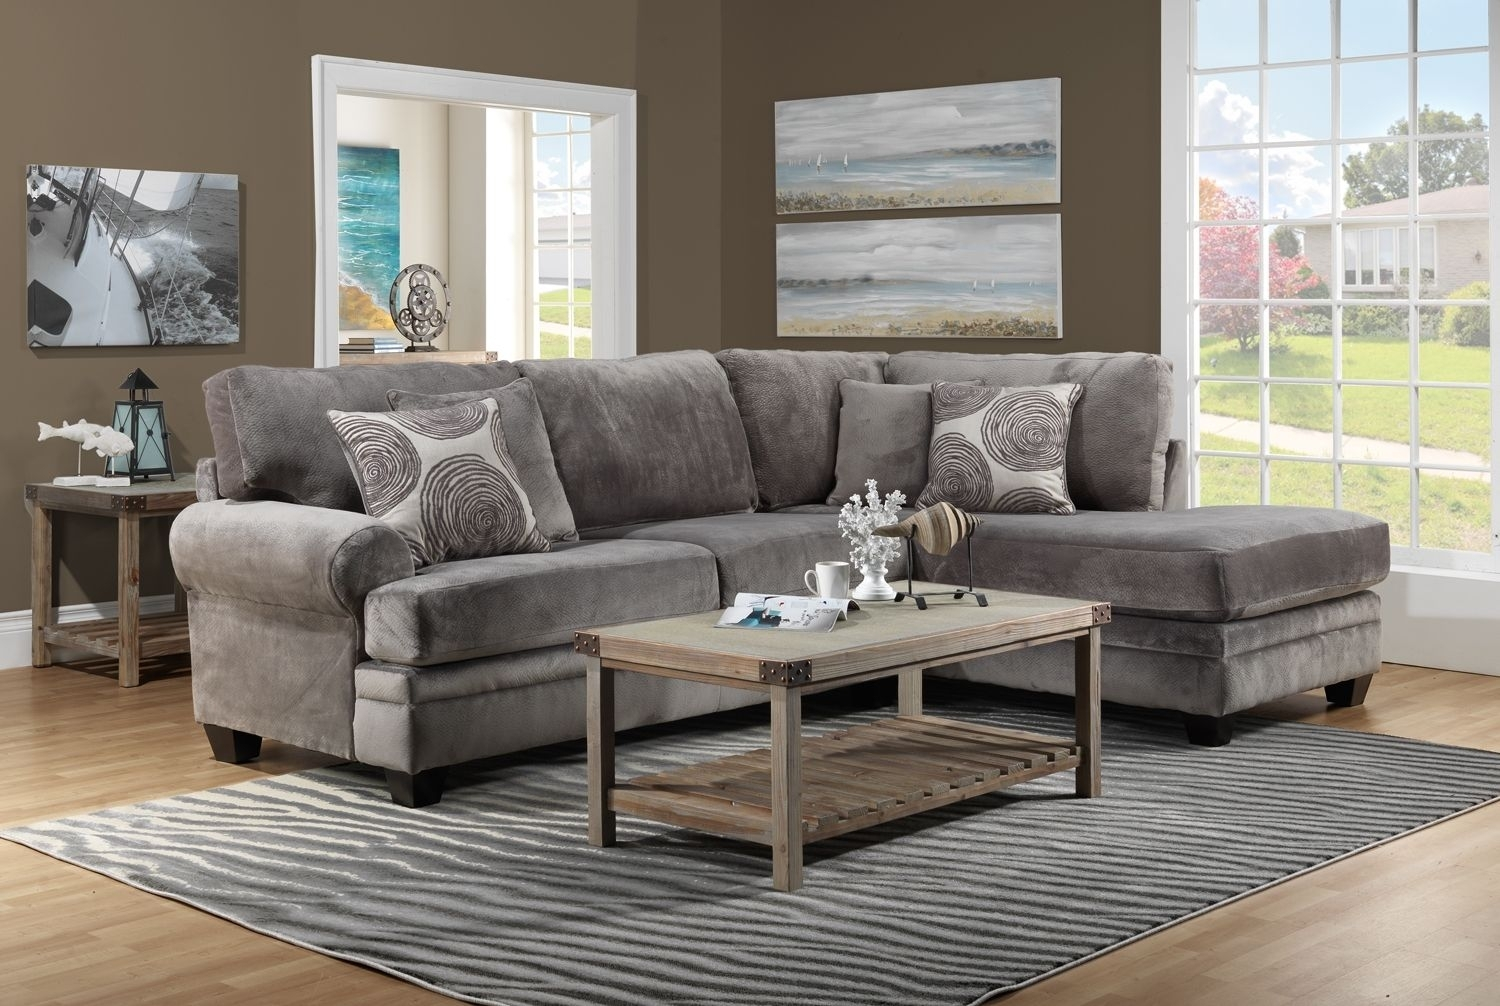 Living Room Furniture-The Lana Collection-Lana 2 Pc. Sectional within Leons Sectional Sofas (Image 8 of 10)